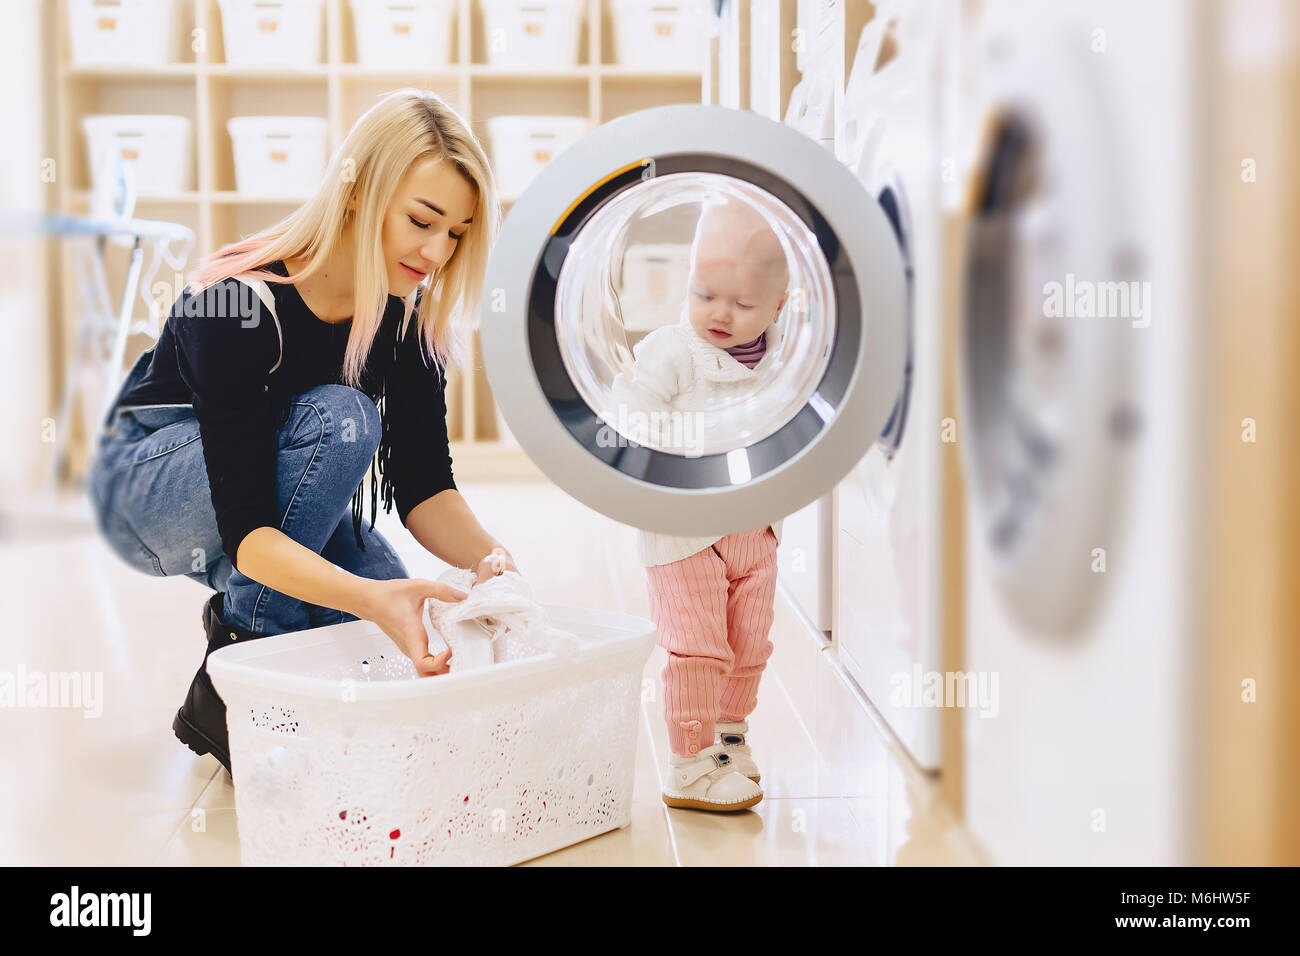 Mom and baby in the laundry take things and play fun games Stock Photo